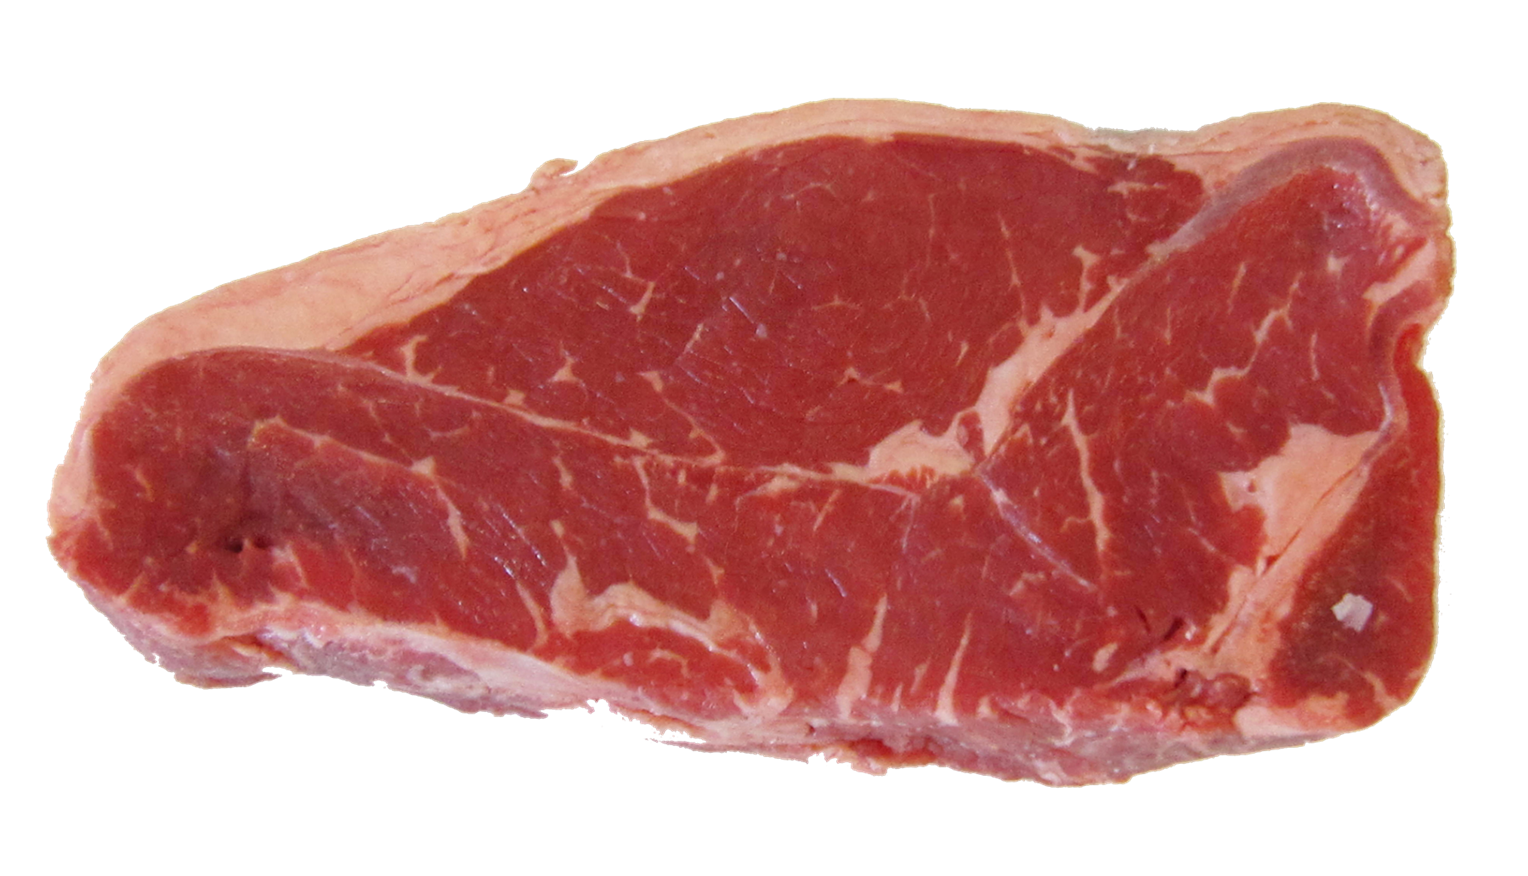 Raw Meat PNG File - Meat HD PNG